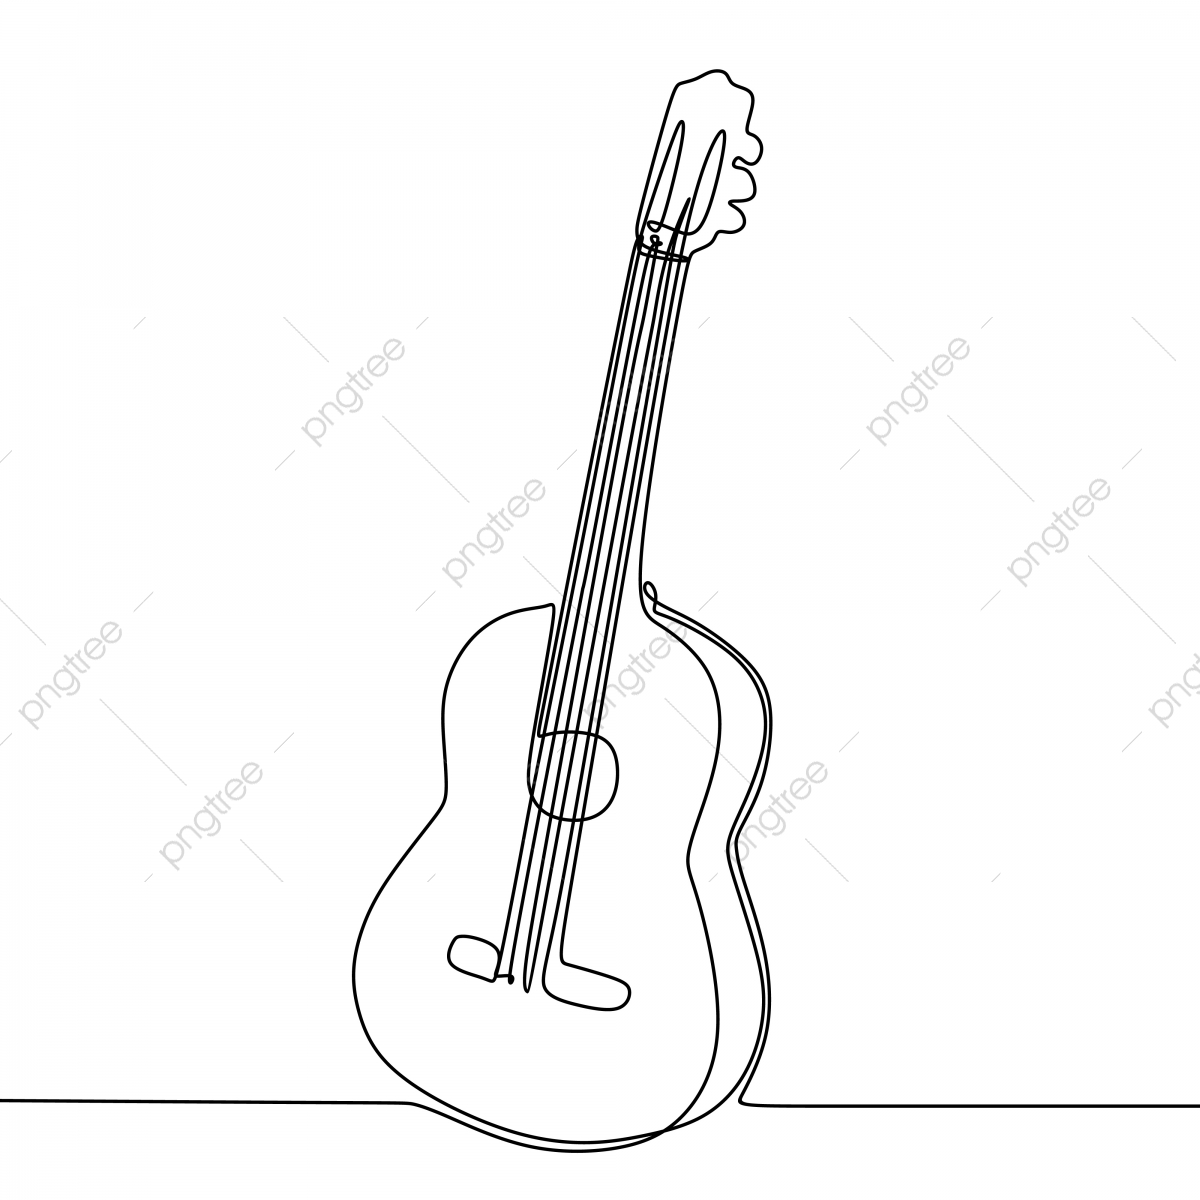 Guitar Drawing Vector With Single Continuous One Line Art Style Isolated On White Background Guitar One Single Png And Vector With Transparent Background For Free Download